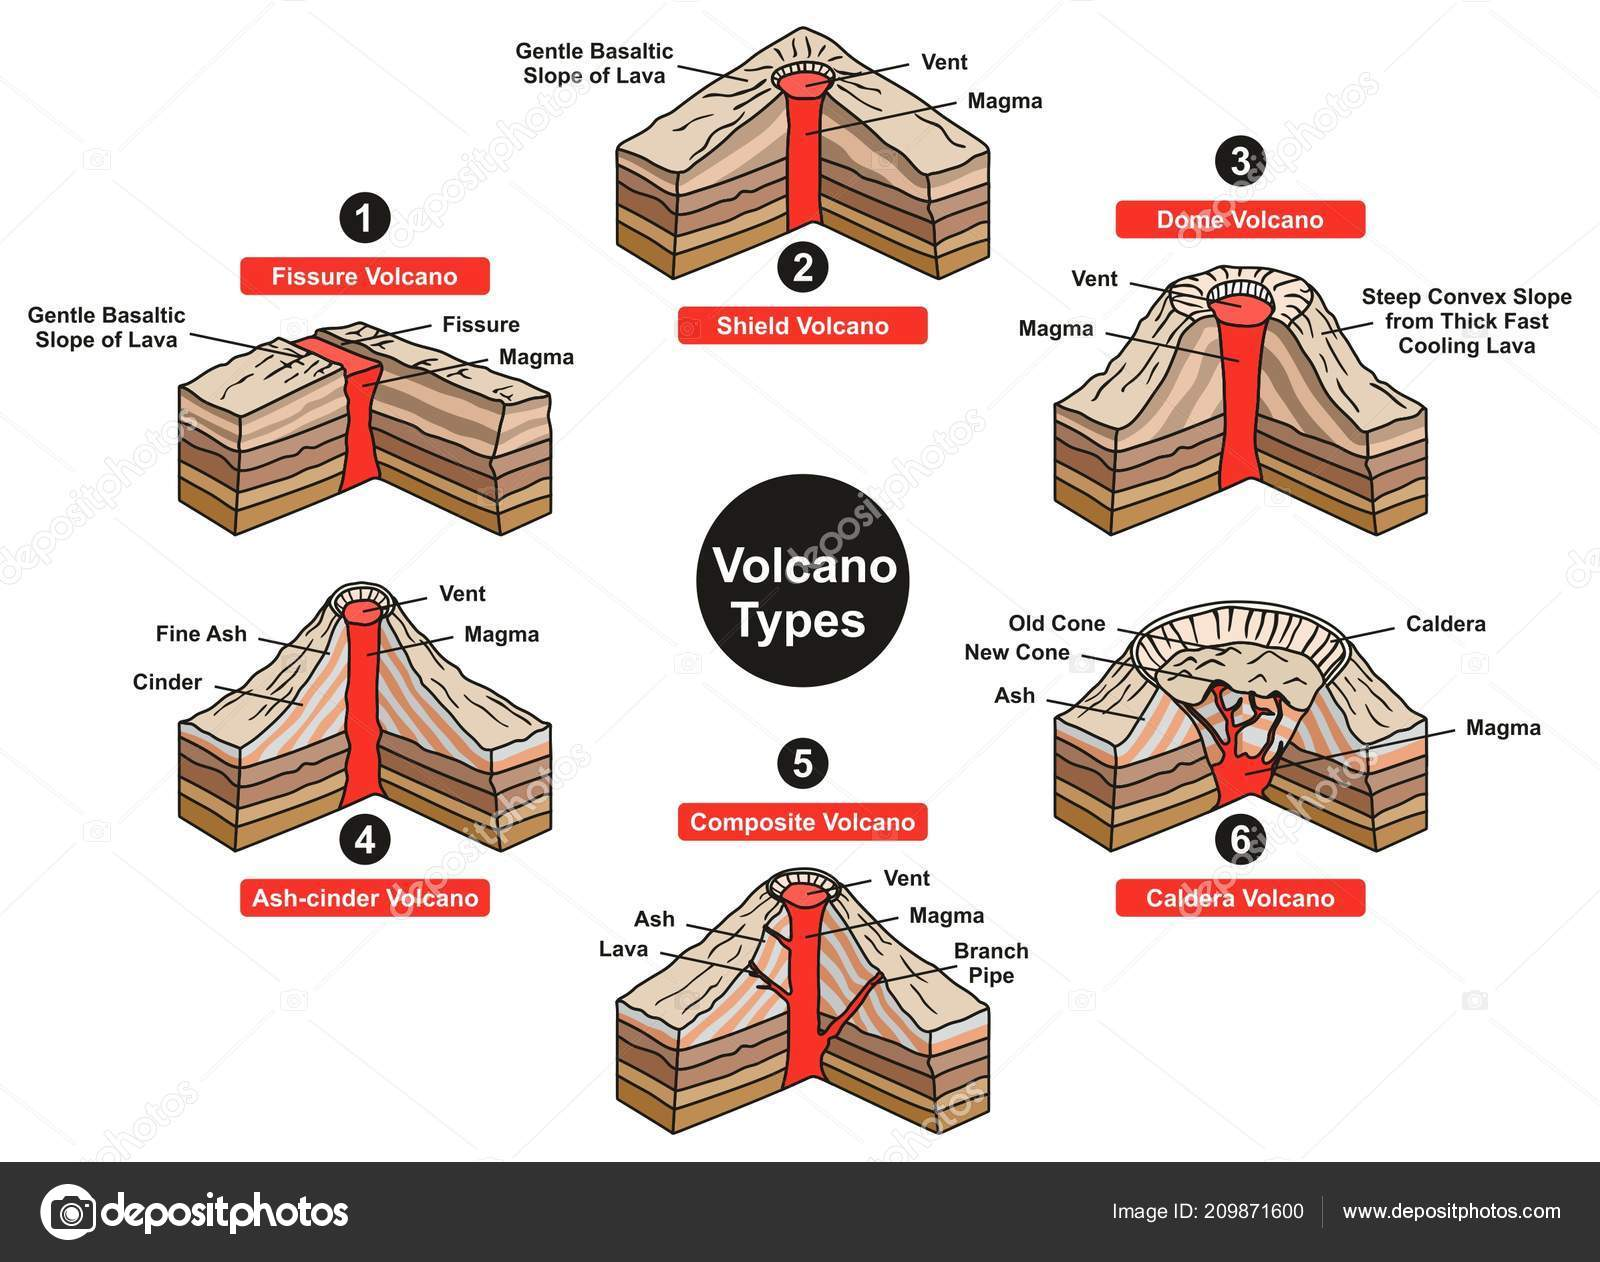 Types volcanoes diagrams trusted wiring diagrams volcano types infographic diagram including fissure shield dome ash rh depositphotos com tornado diagram earthquake diagram ccuart Image collections